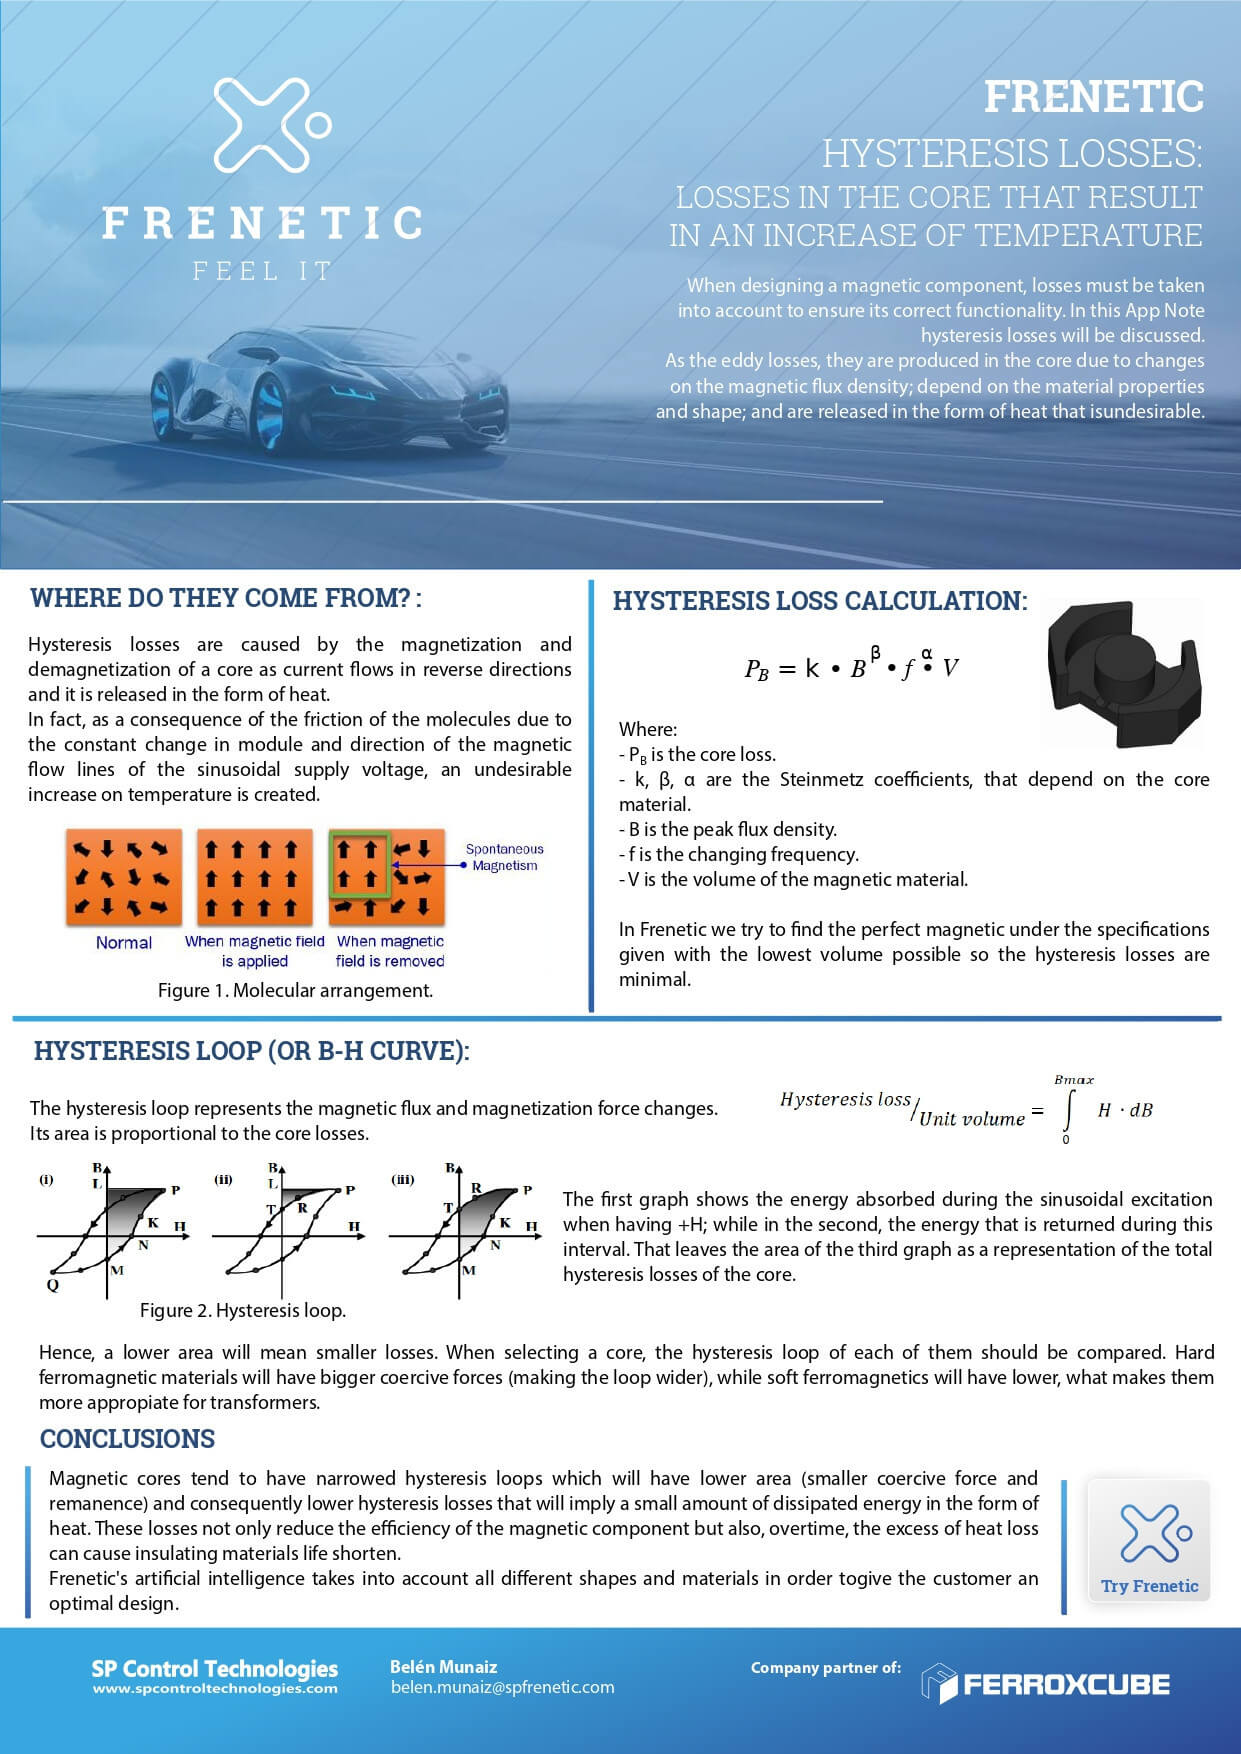 Hysteresis Losses Causes & Calculations